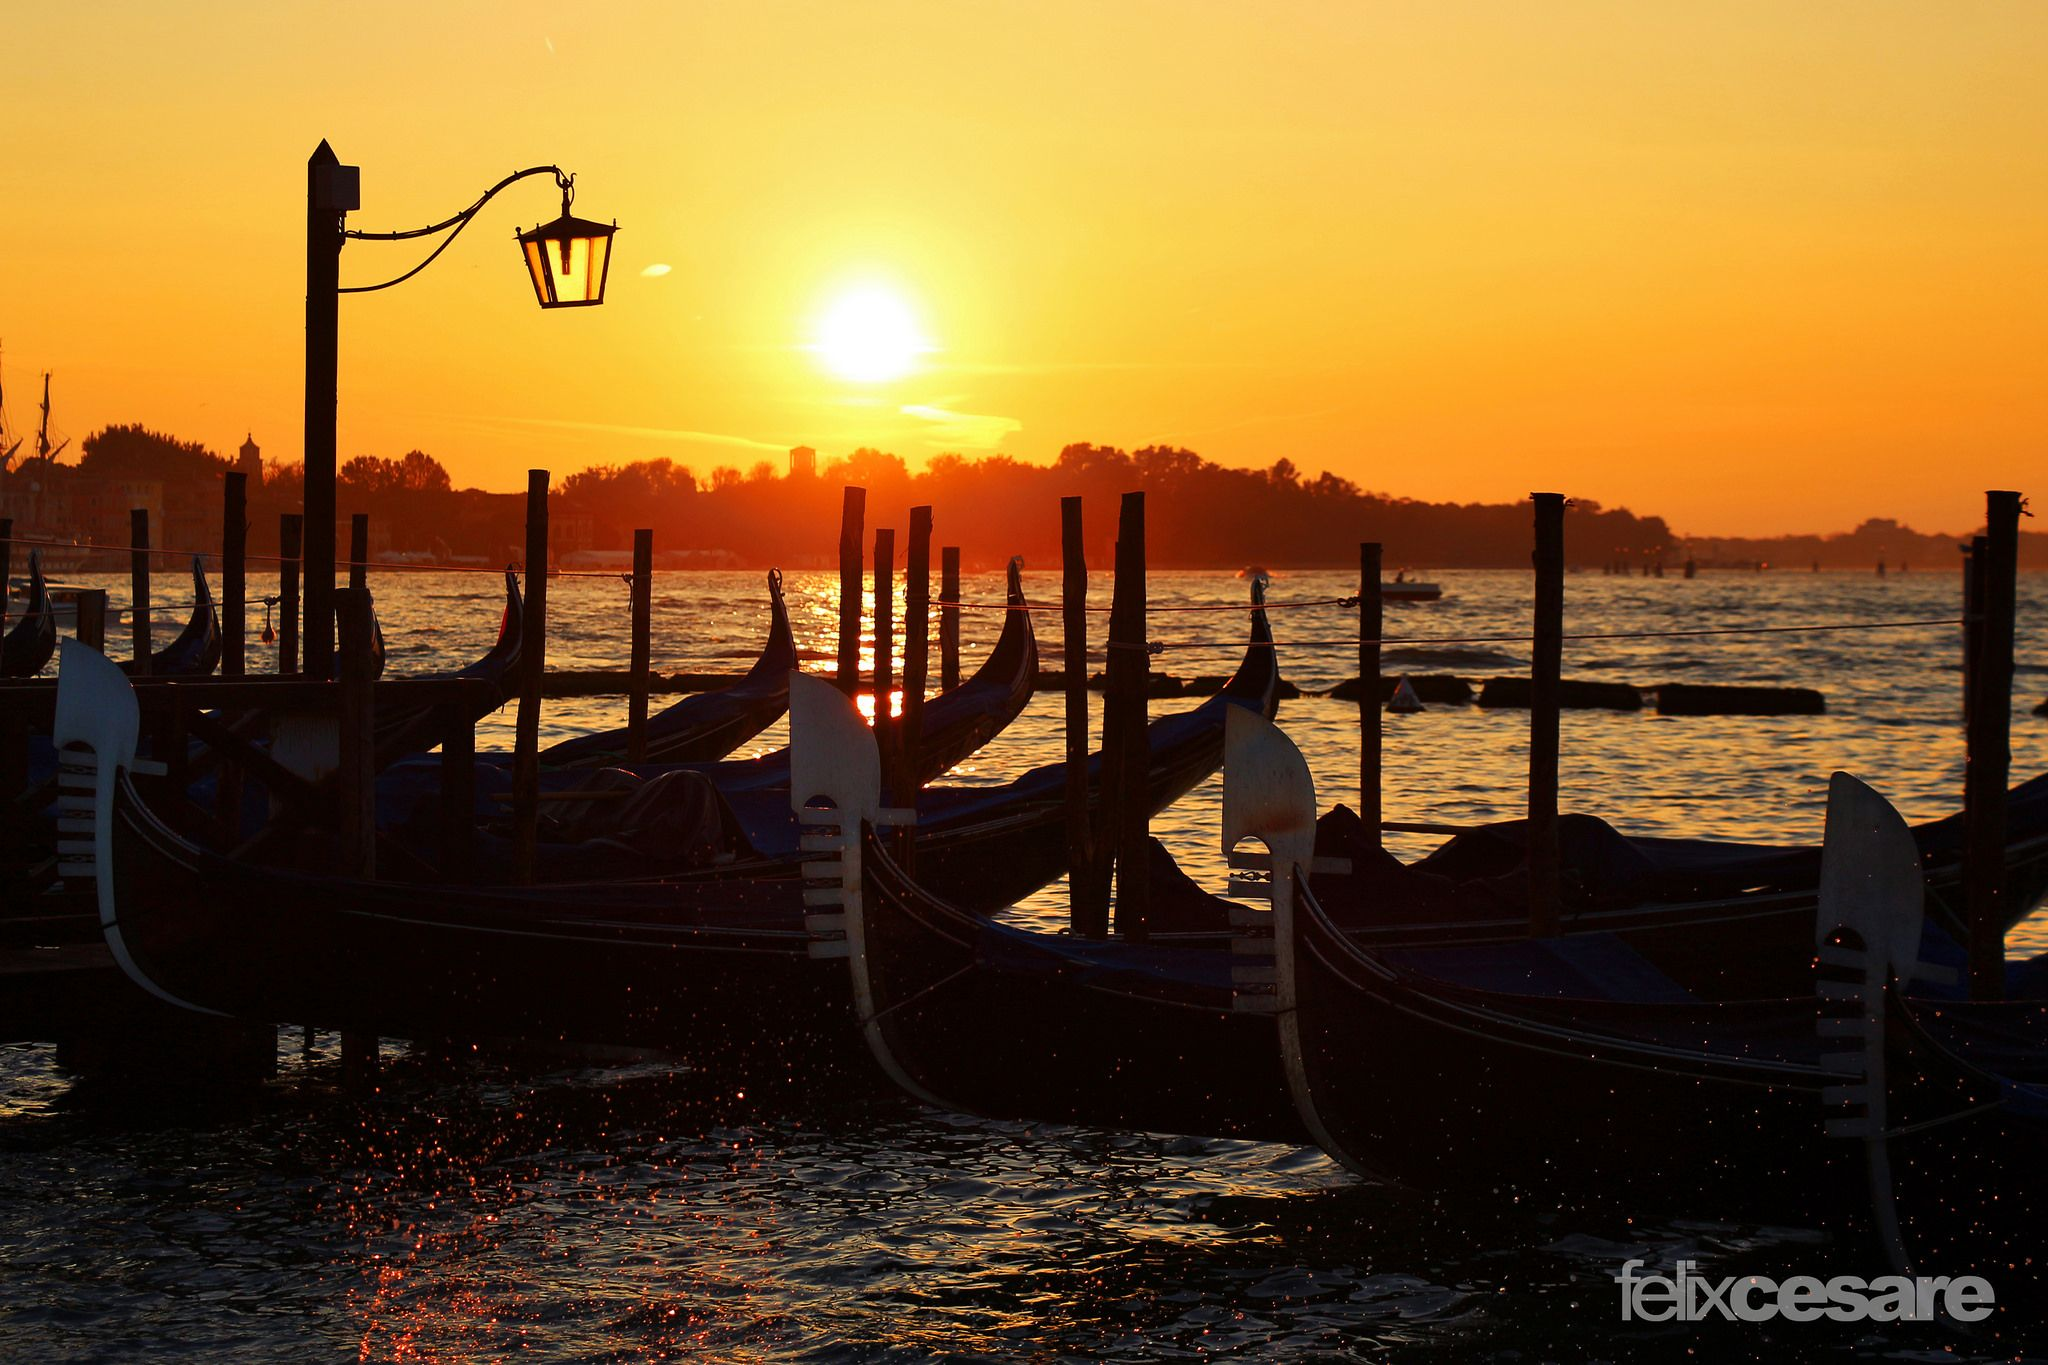 https://flic.kr/p/zBPFQg | Gondola Sunset, Venice | Venice is a city in northeastern Italy sited on a group of 118 small islands separated by canals and linked by bridges.